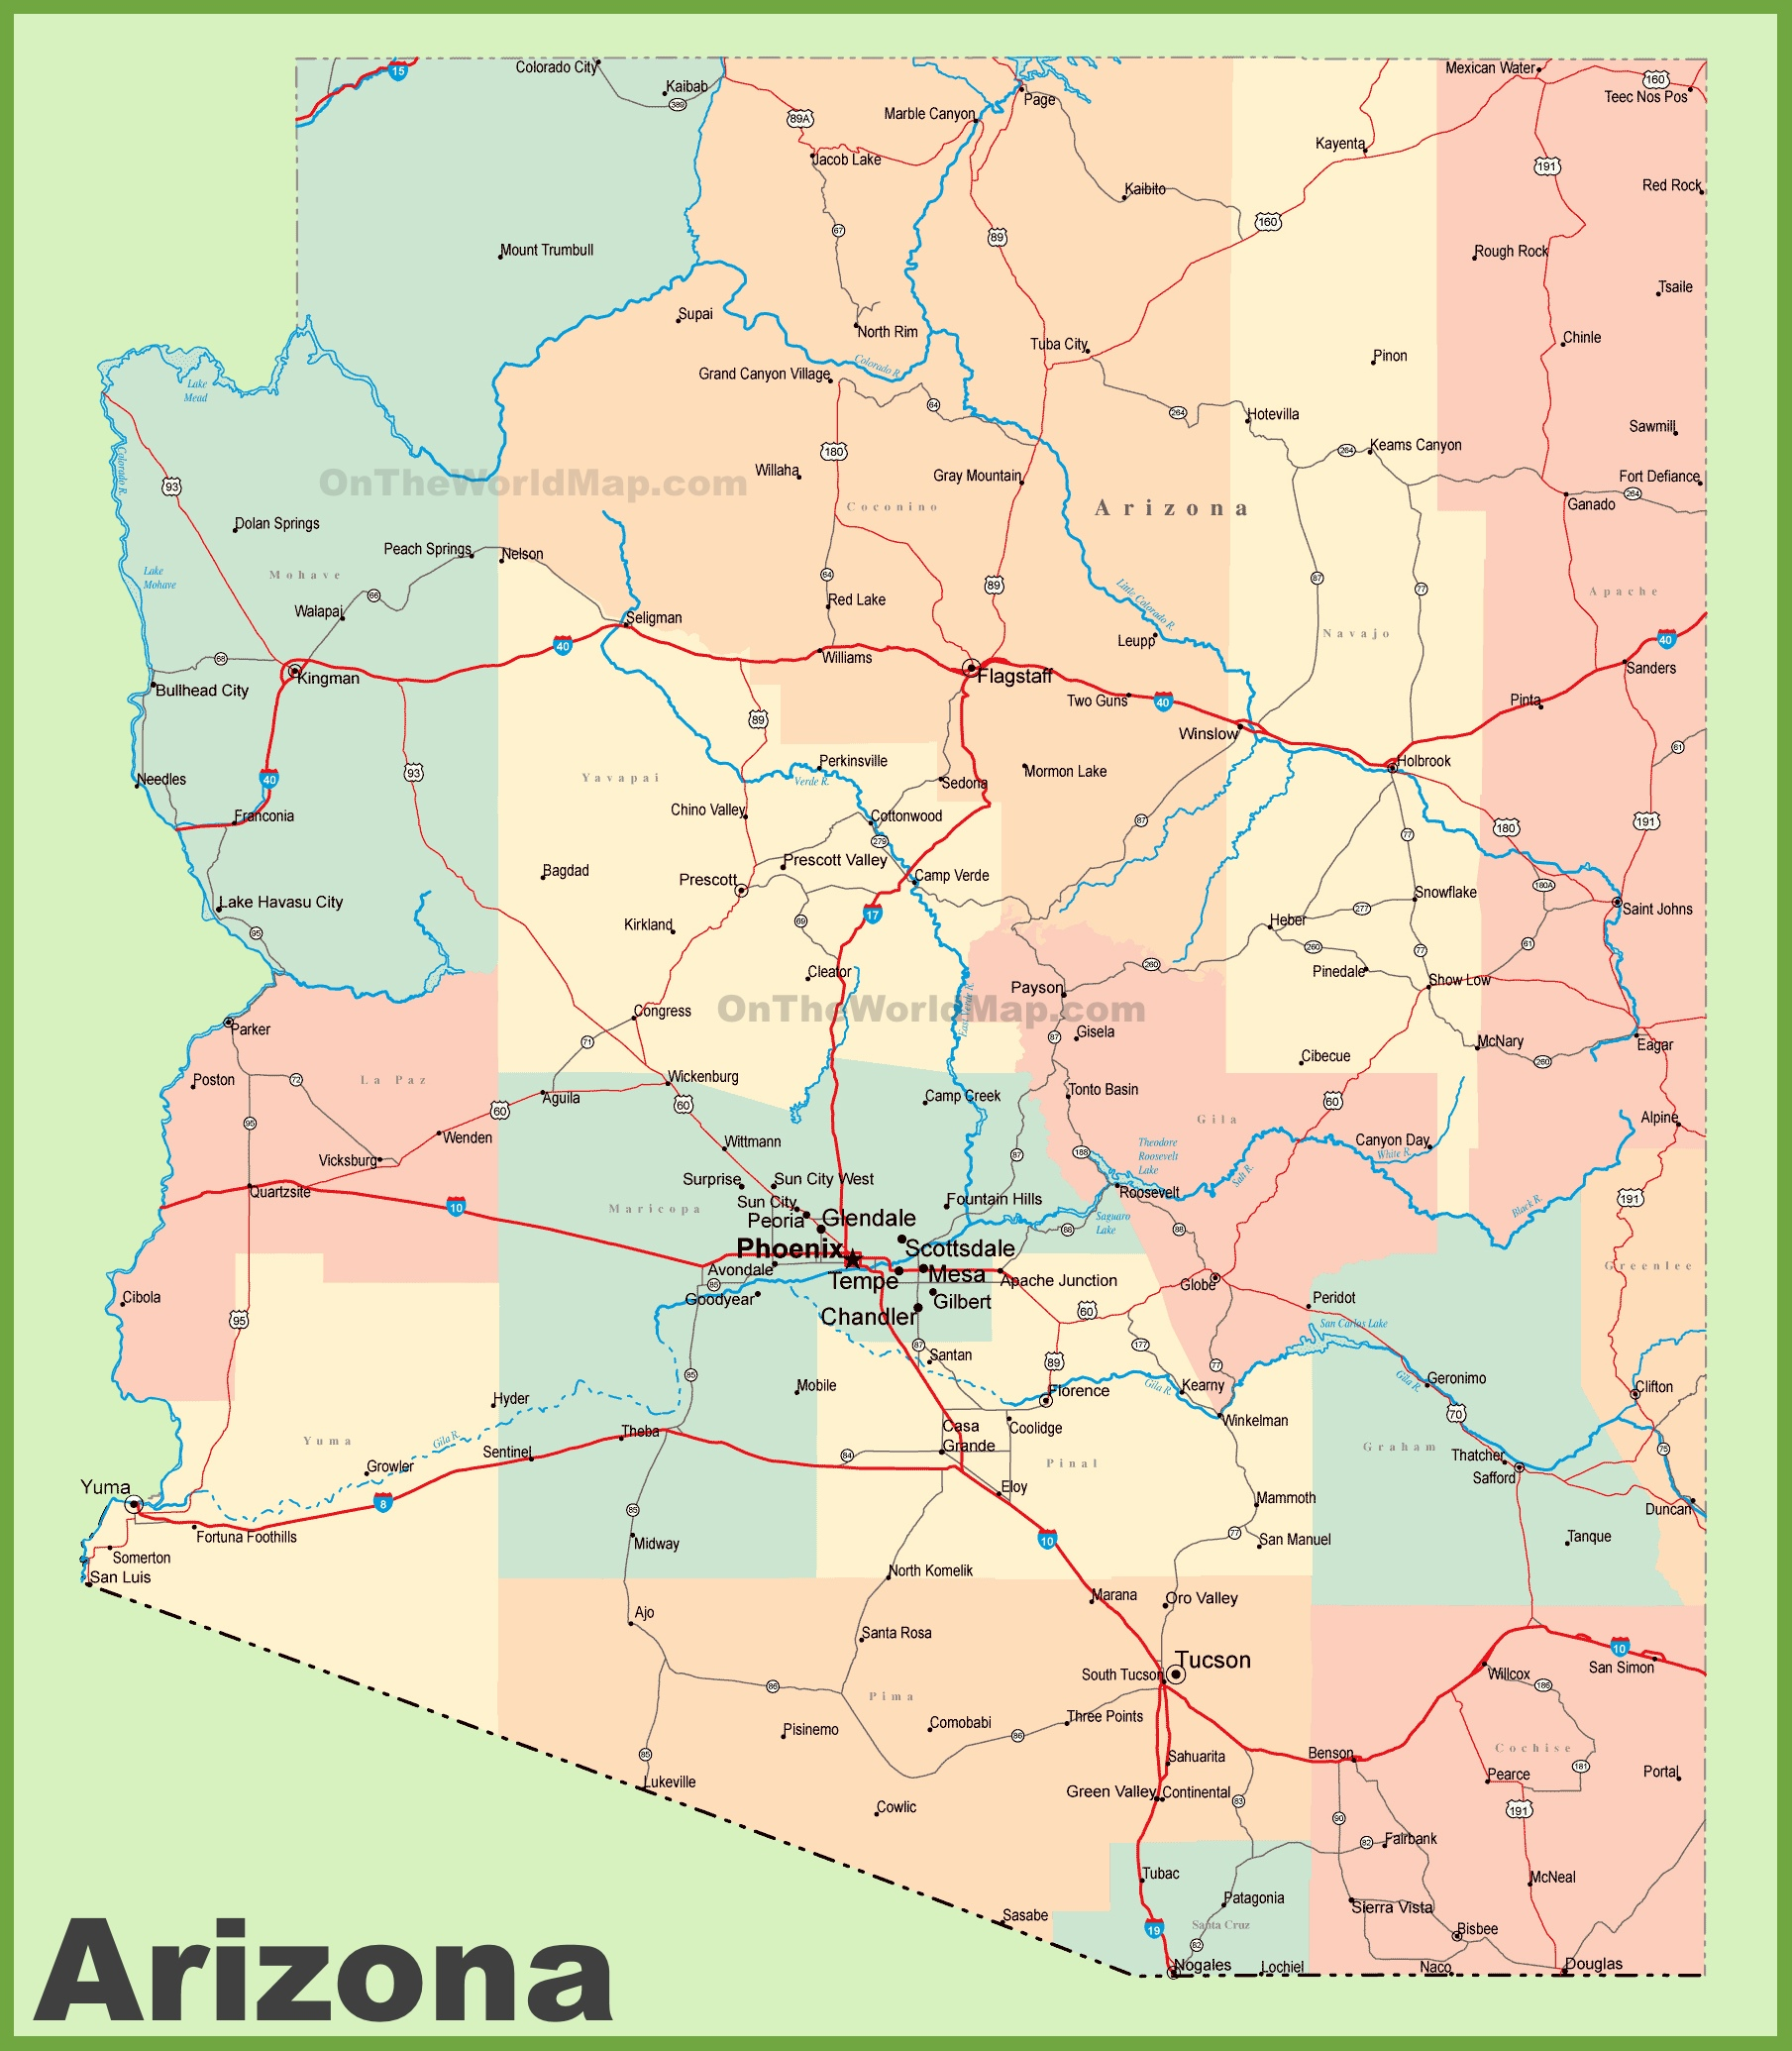 Arizona Map Cities Arizona road map with cities and towns Arizona Map Cities